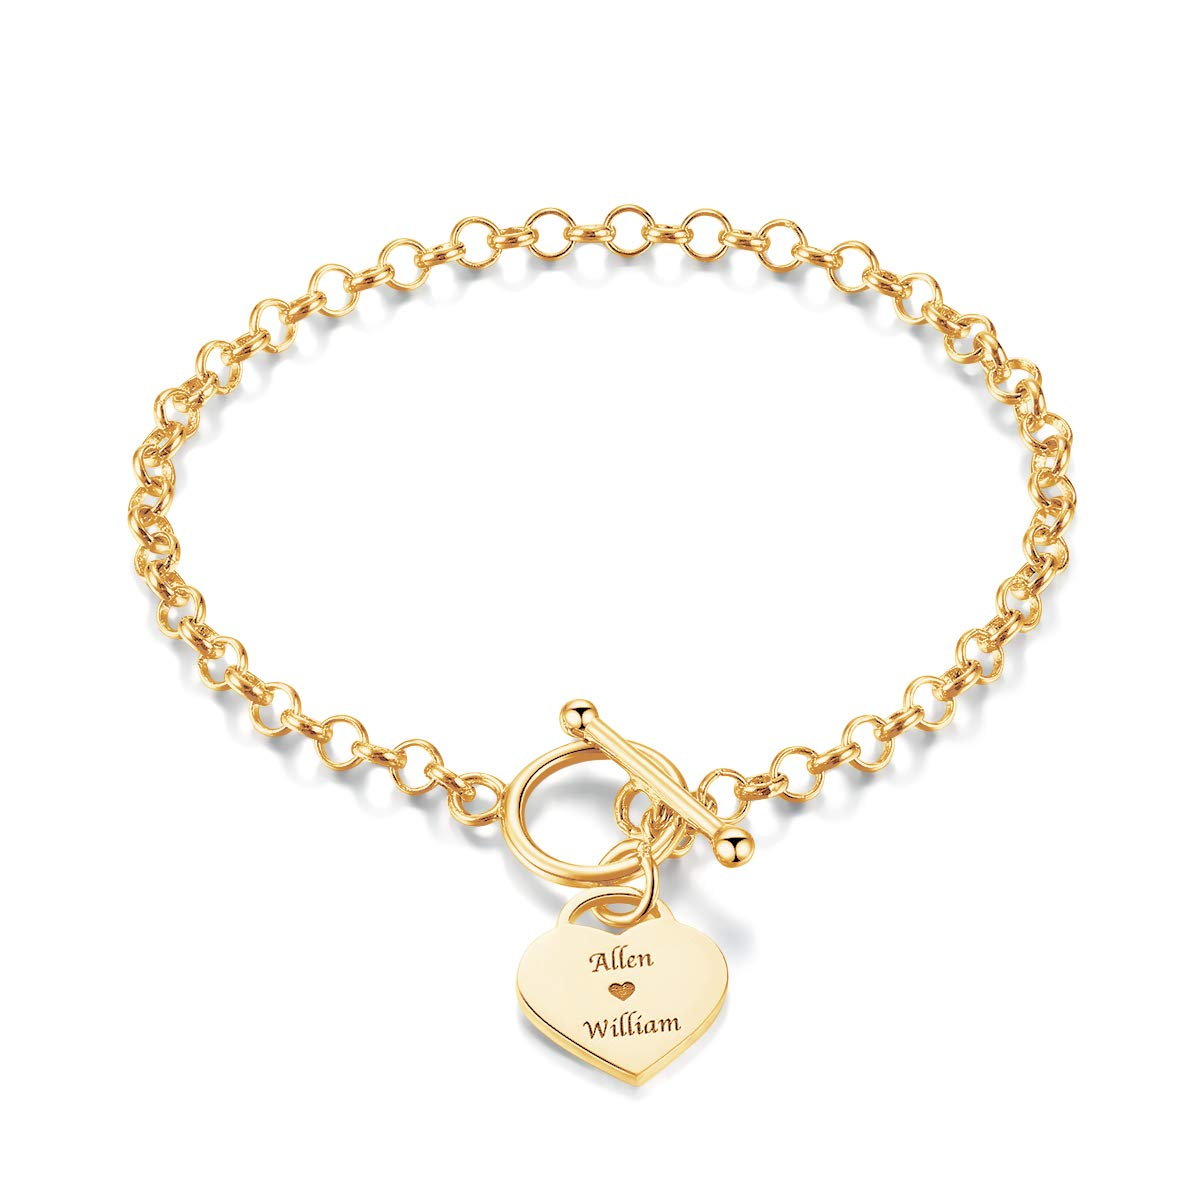 MeMoShe Personalized Name Bracelet, Custom Engraving Heart Charm Initial Link Bracelet Dainty Valentine's Gifts MS-0018-3